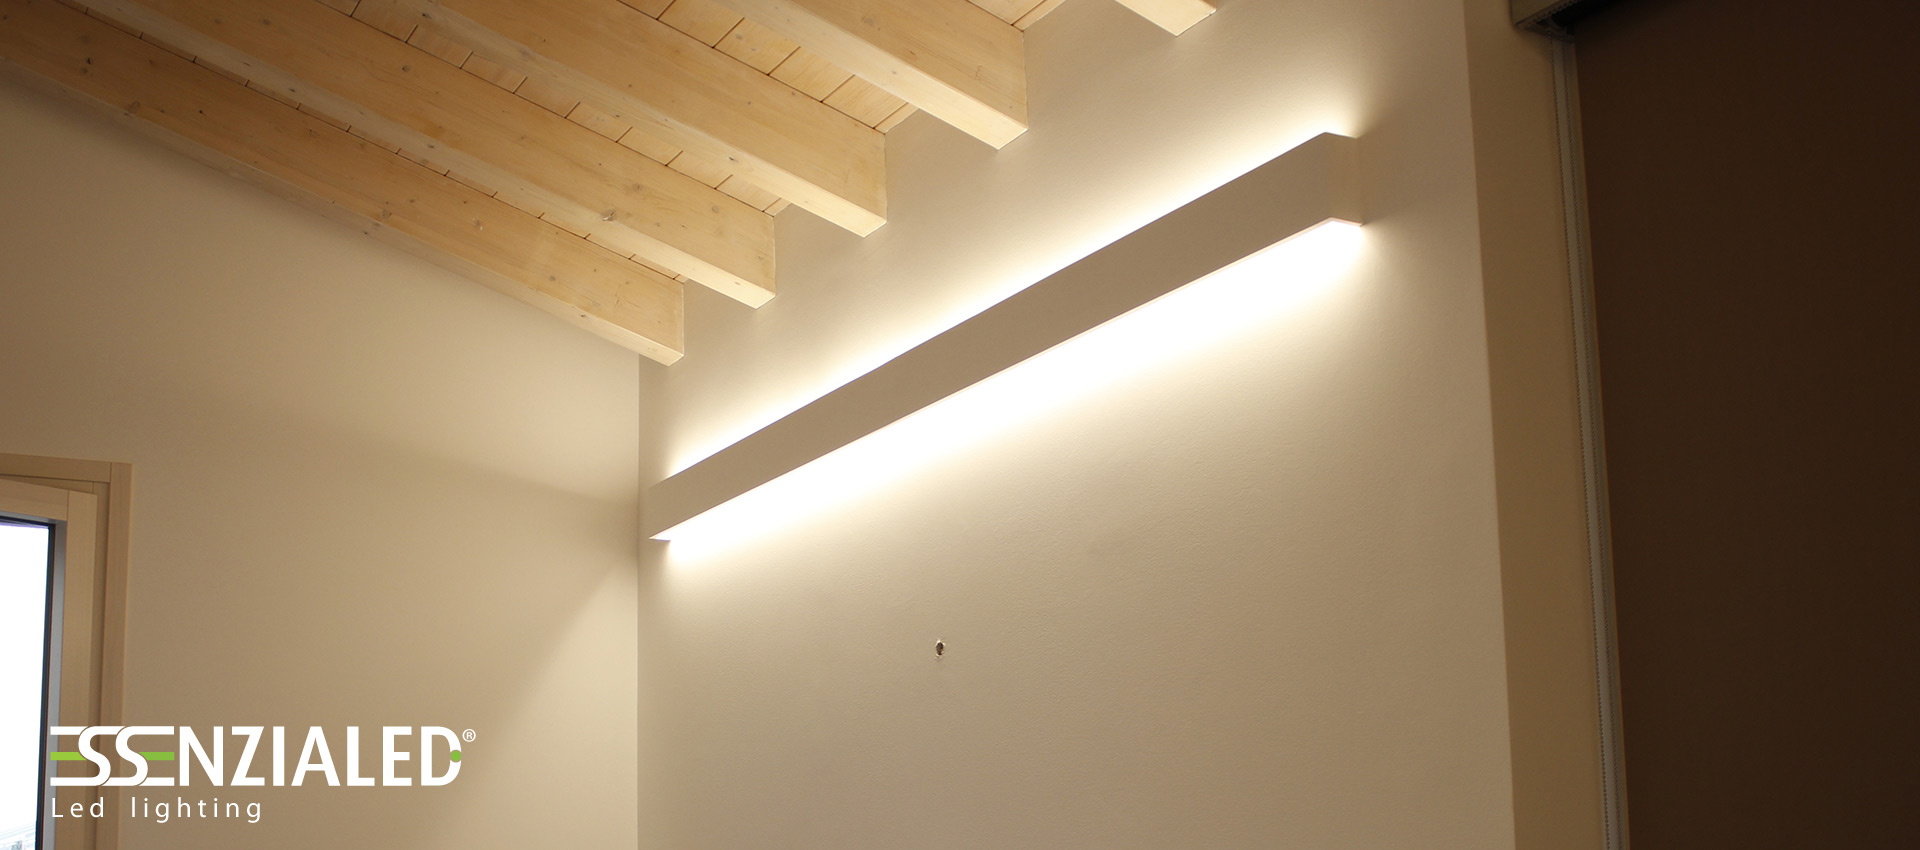 Luci a led per soffitto gi46 pineglen - Luci a led per cucina ...